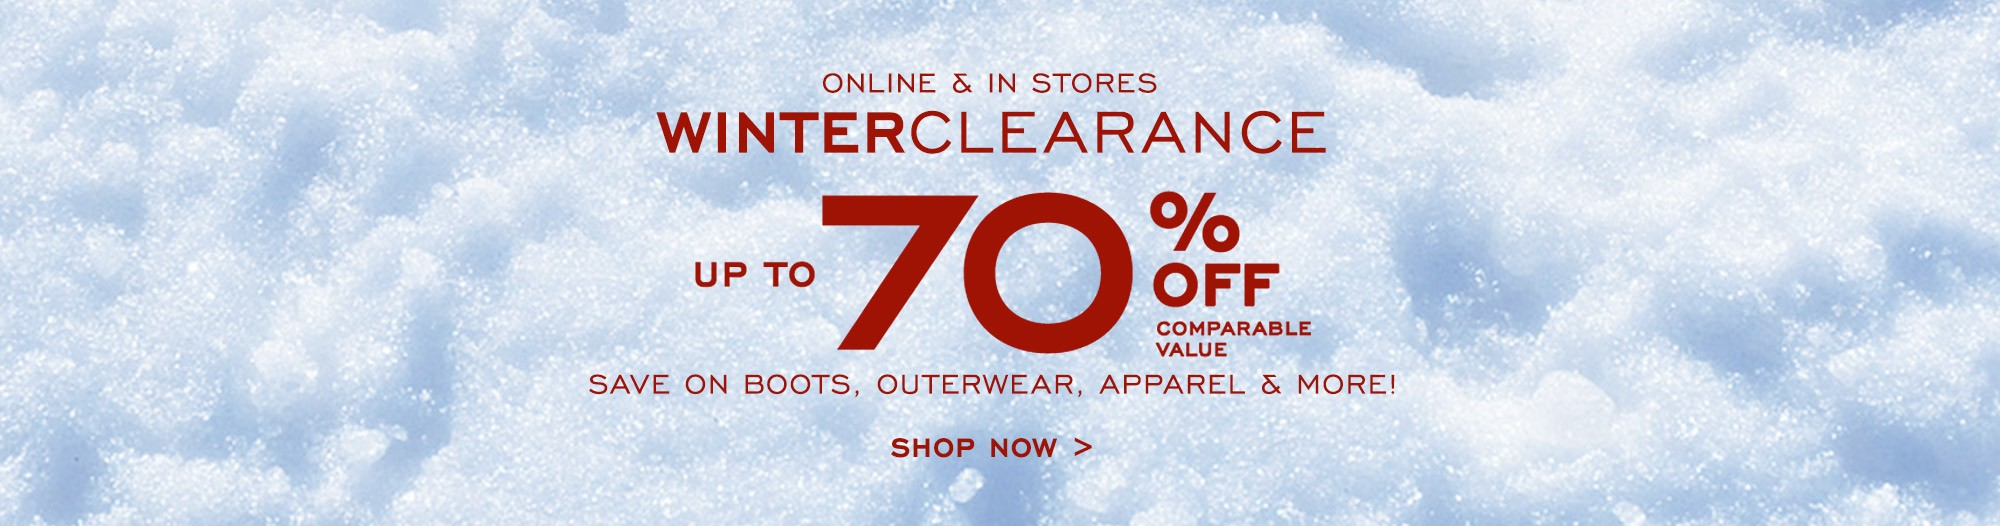 Bargain - Up to 70% OFF - Winter Clearance @ G. H. Bass & Co.